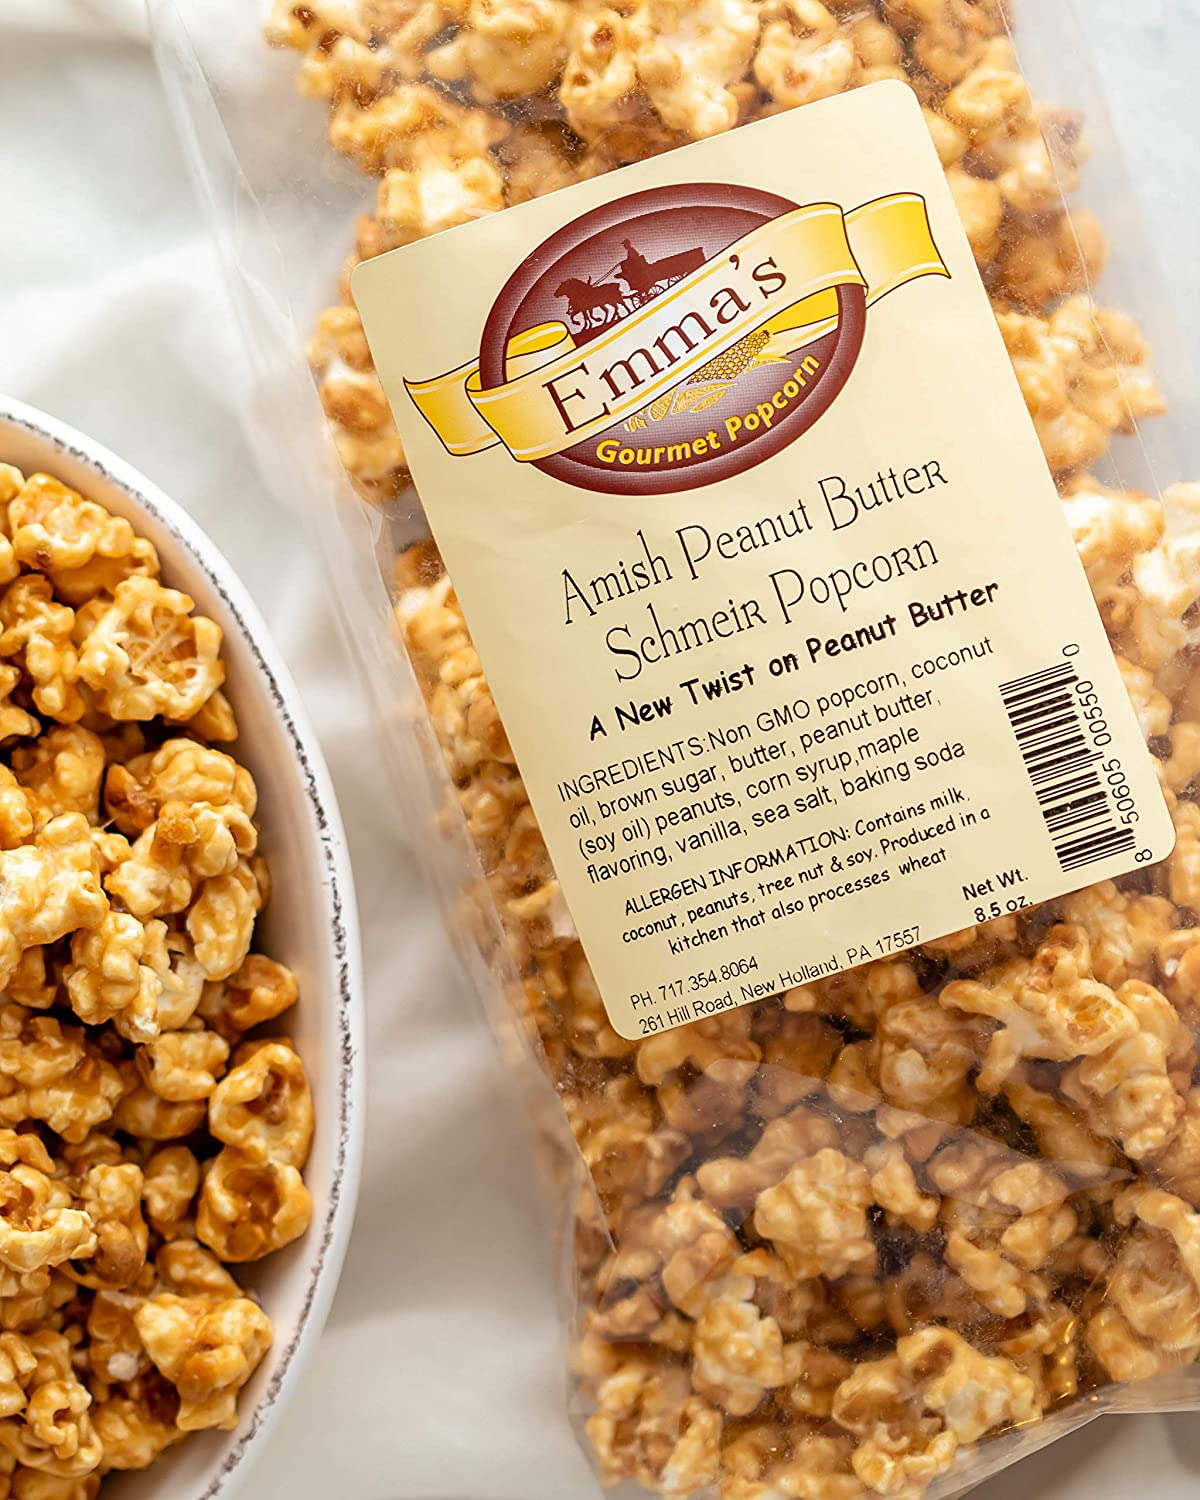 Emma's Gourmet Amish Peanut Butter Schmeir Popcorn   Melt in your Mouth Caramel with a Peanut Butter Flavor   Made with Real Butter and Coconut Oil   Great for Party Snack (8.5 oz Bag)